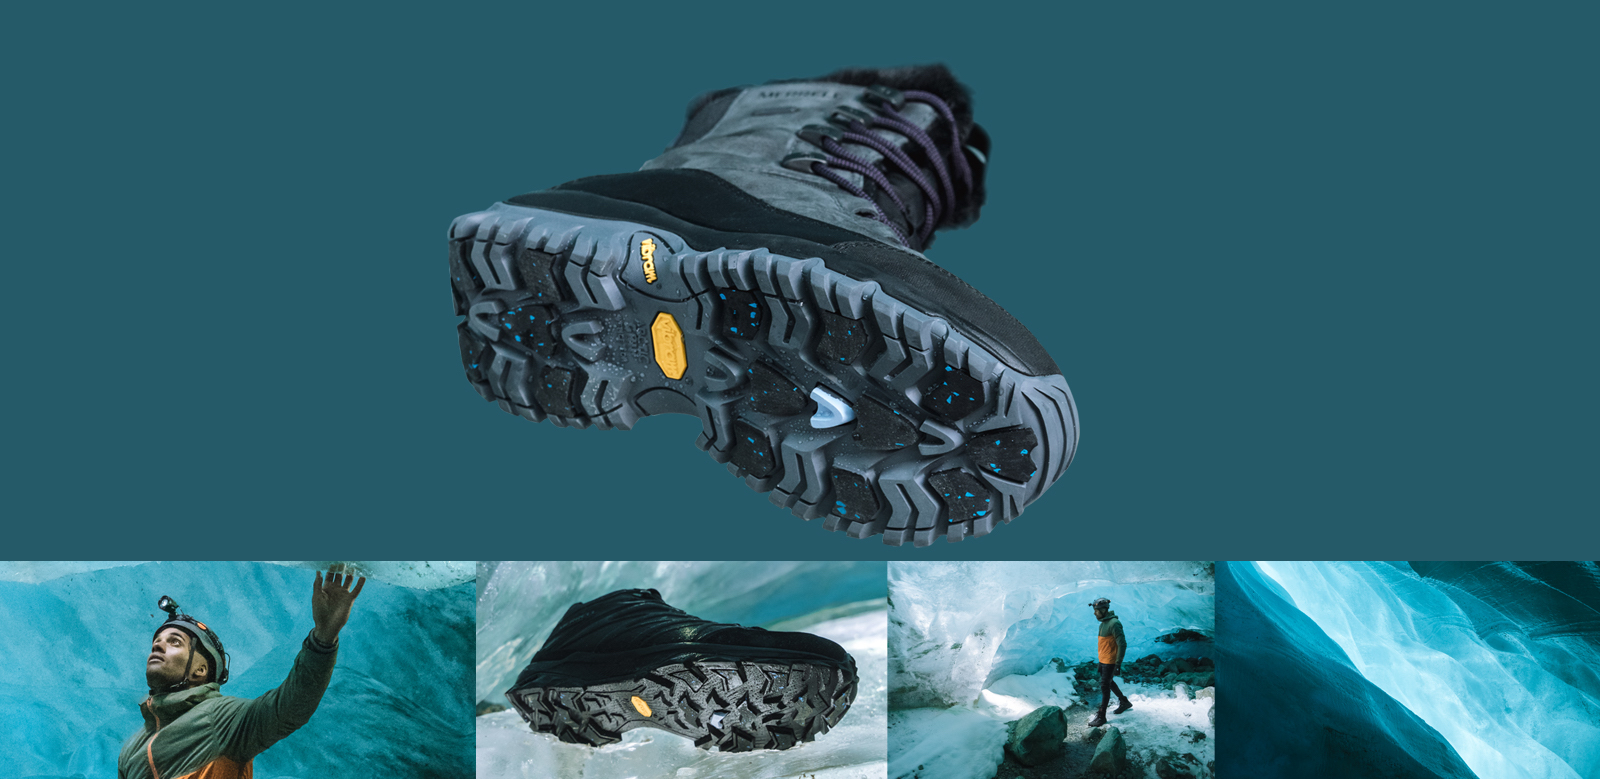 Tread of Merrell's Arctic Grip Boot.